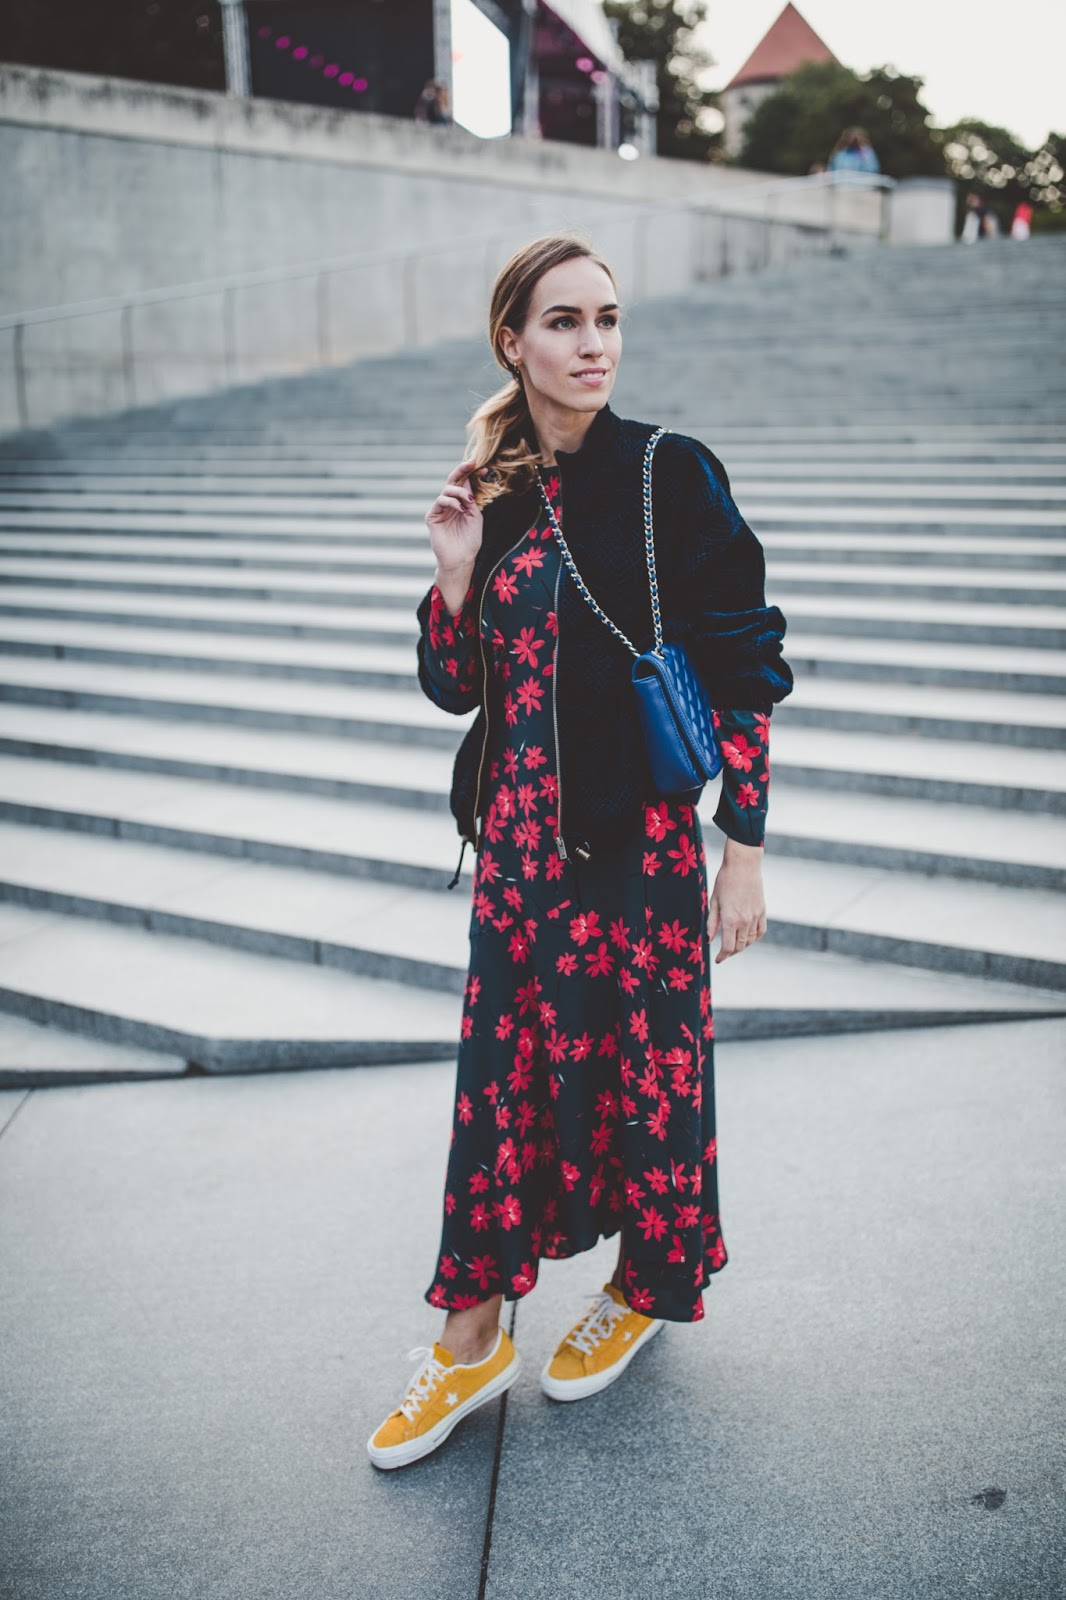 floral print midi dress fall outfit